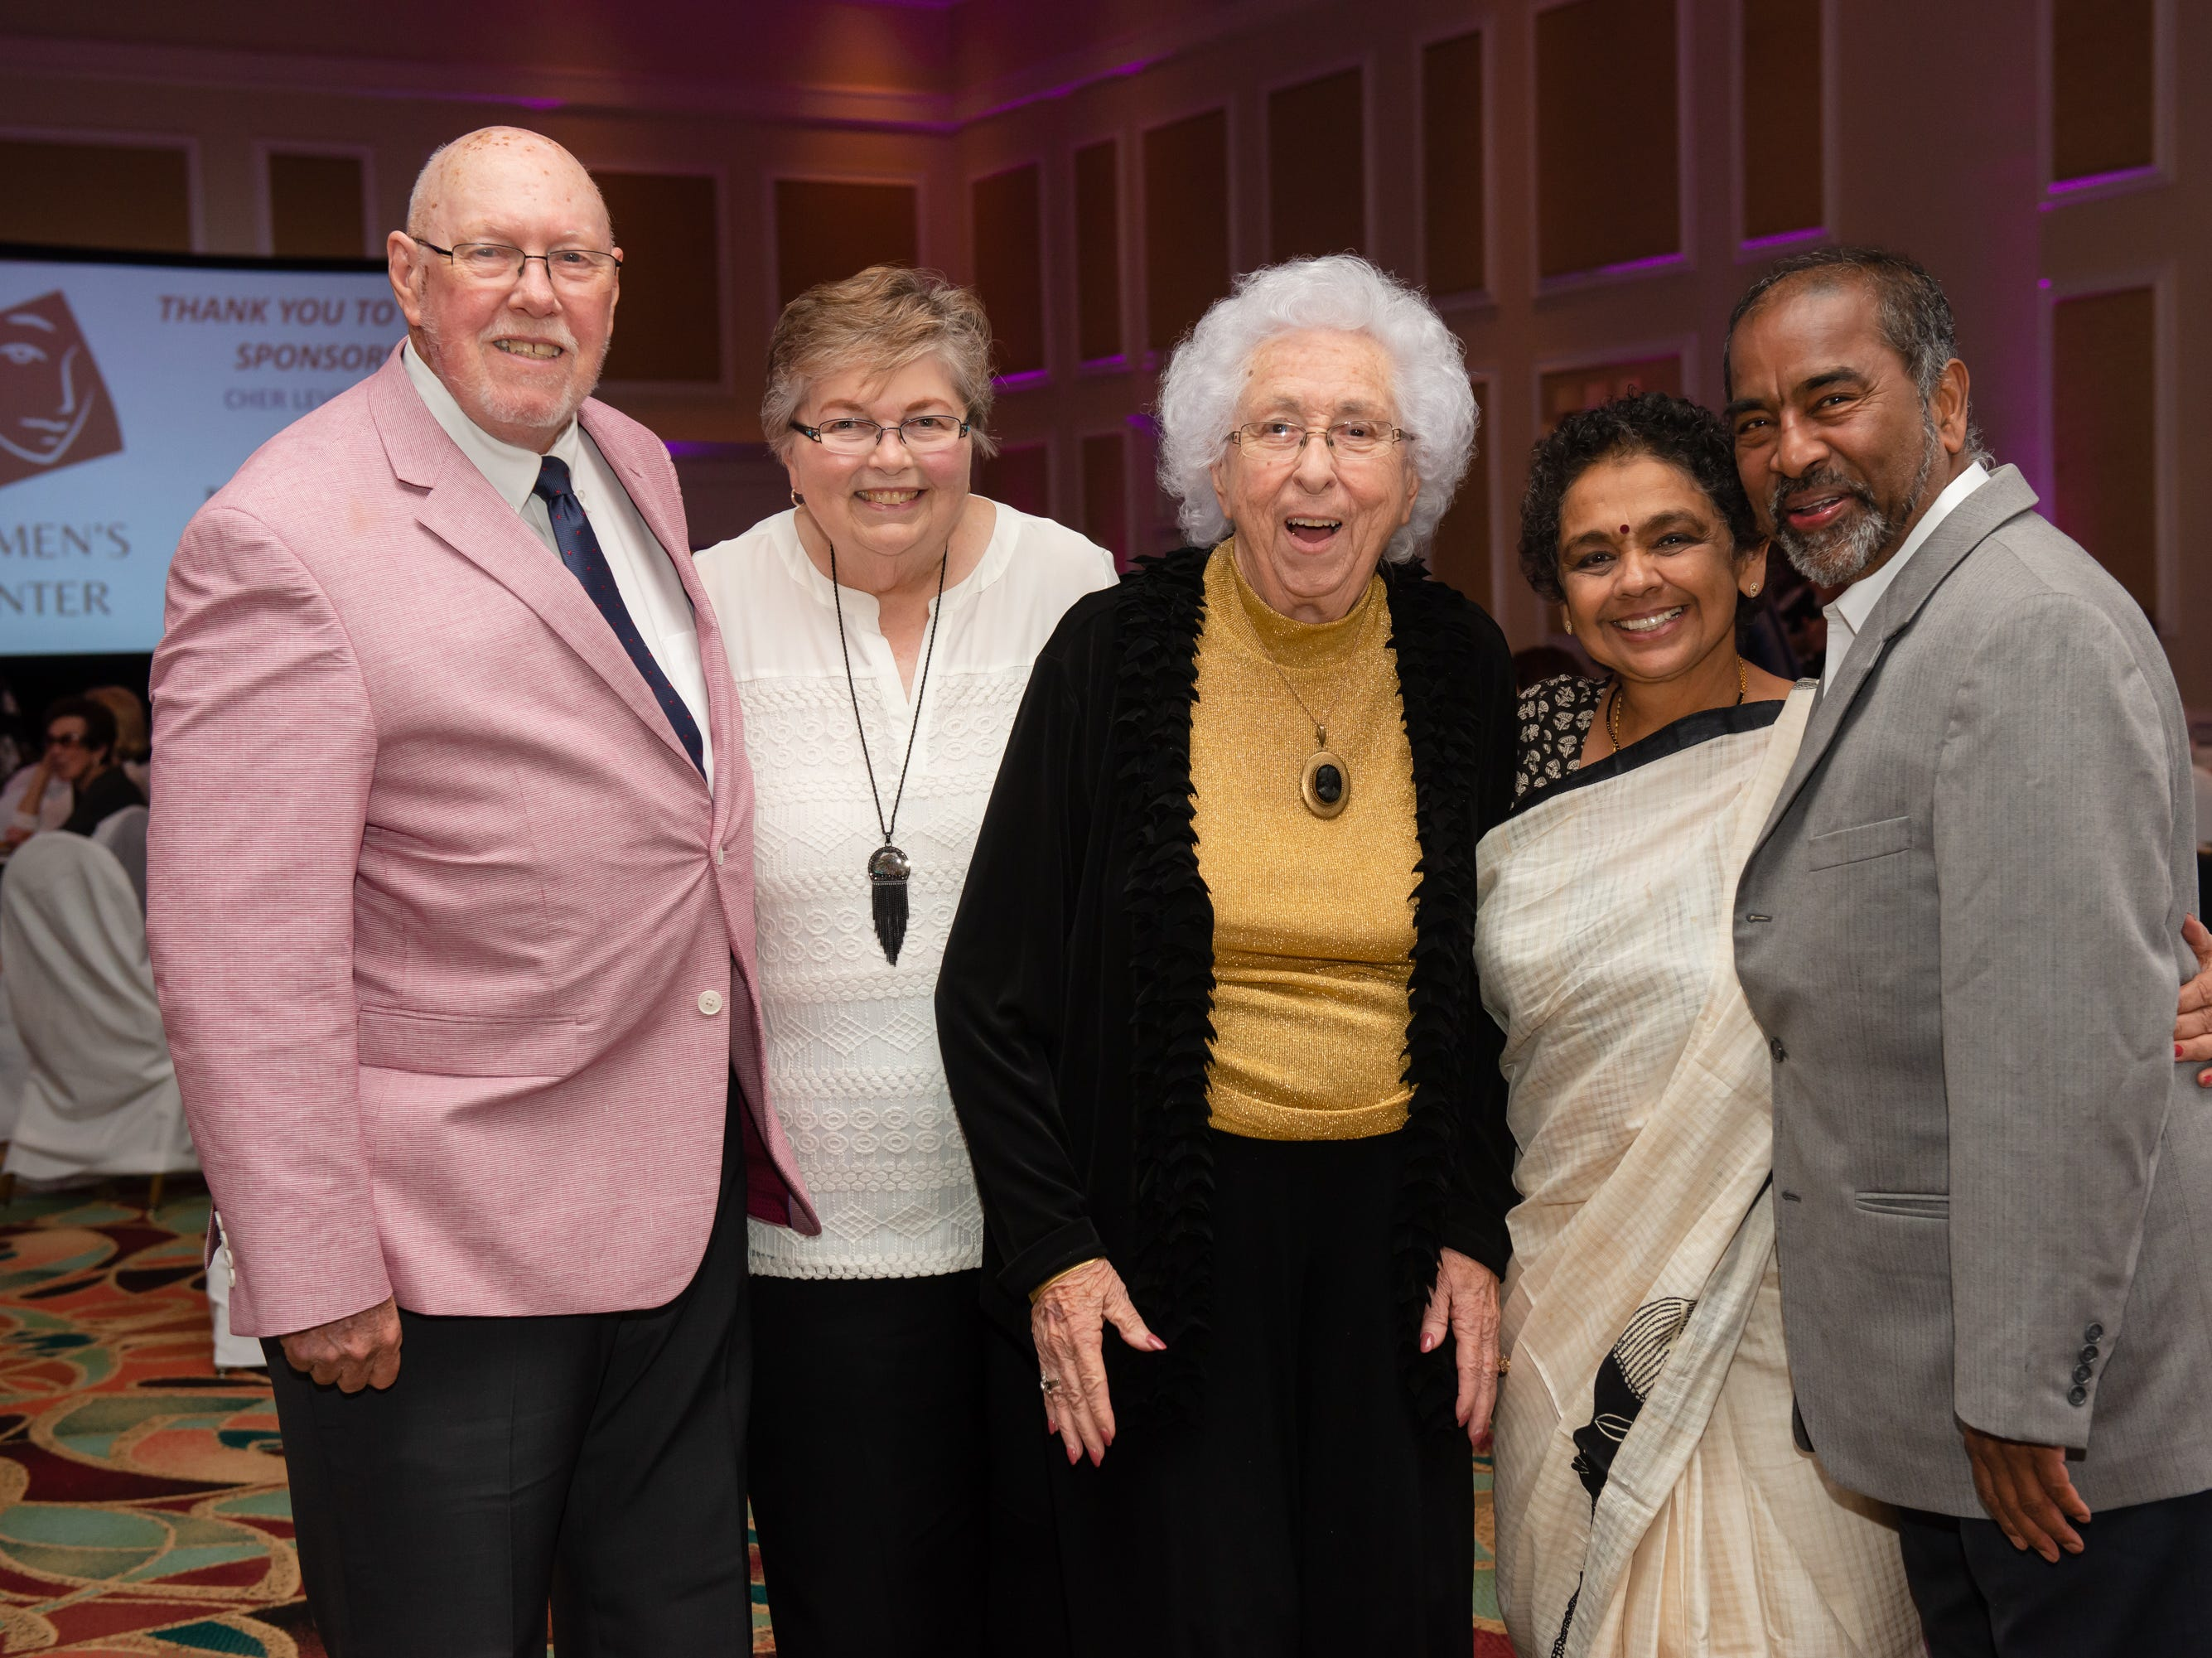 """Bill Terry, Rachel Terry, Dr. Pat Manning, Ambika Ravindran and Dr. Ravindran Palaniyandi at """"Dude Looks Like a Lady"""" event benefitting the Women's Center."""